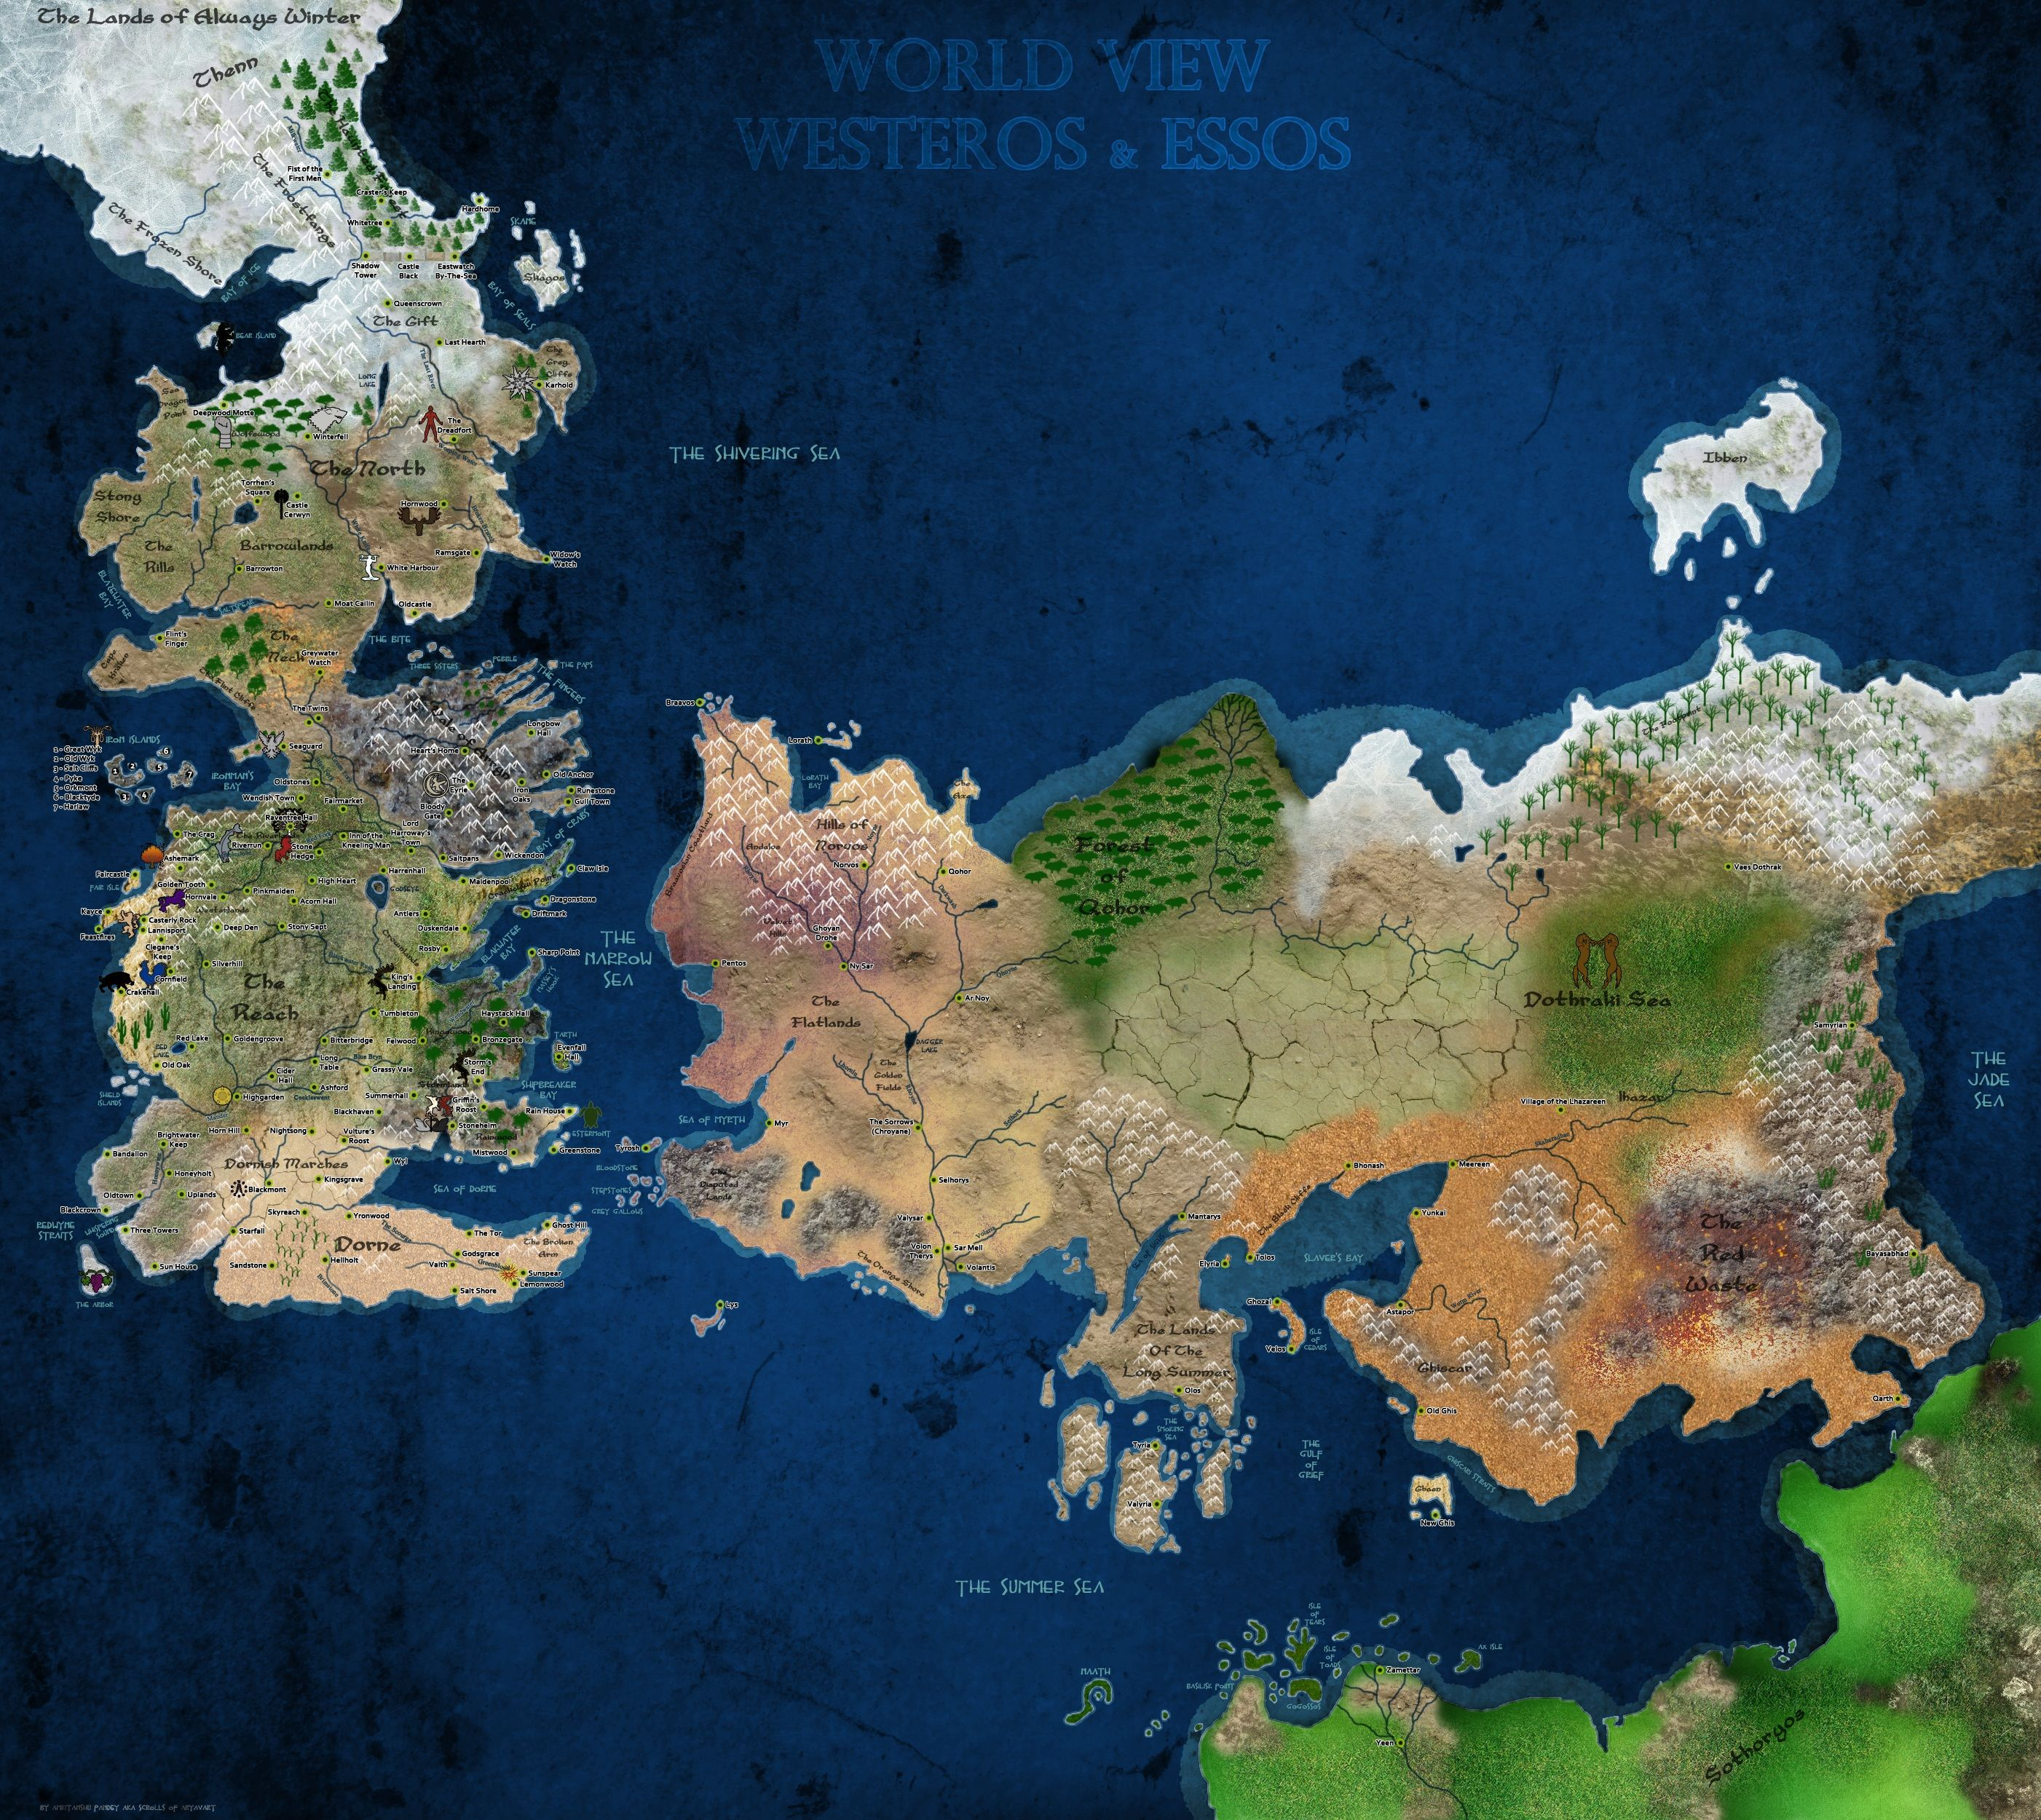 Best game of thrones map ive seen so far | Random | Game of ... Game Of Thrones Official Map on game of thrones 4d puzzle map, game of thrones map essos, game of thrones map detailed, game of thrones full map, game of thrones map board, faerun map official, game of thrones map clans, game of thrones king's landing map, game of thrones houses map, game of thrones city map, game of thrones map wallpaper, game of thrones map of continents, game of thrones map poster, game of thrones realm map, game of thrones kingdom map, game of thrones interactive map, game of thrones map labeled, game of thrones westeros map, game of thrones map game, game of thrones world map,